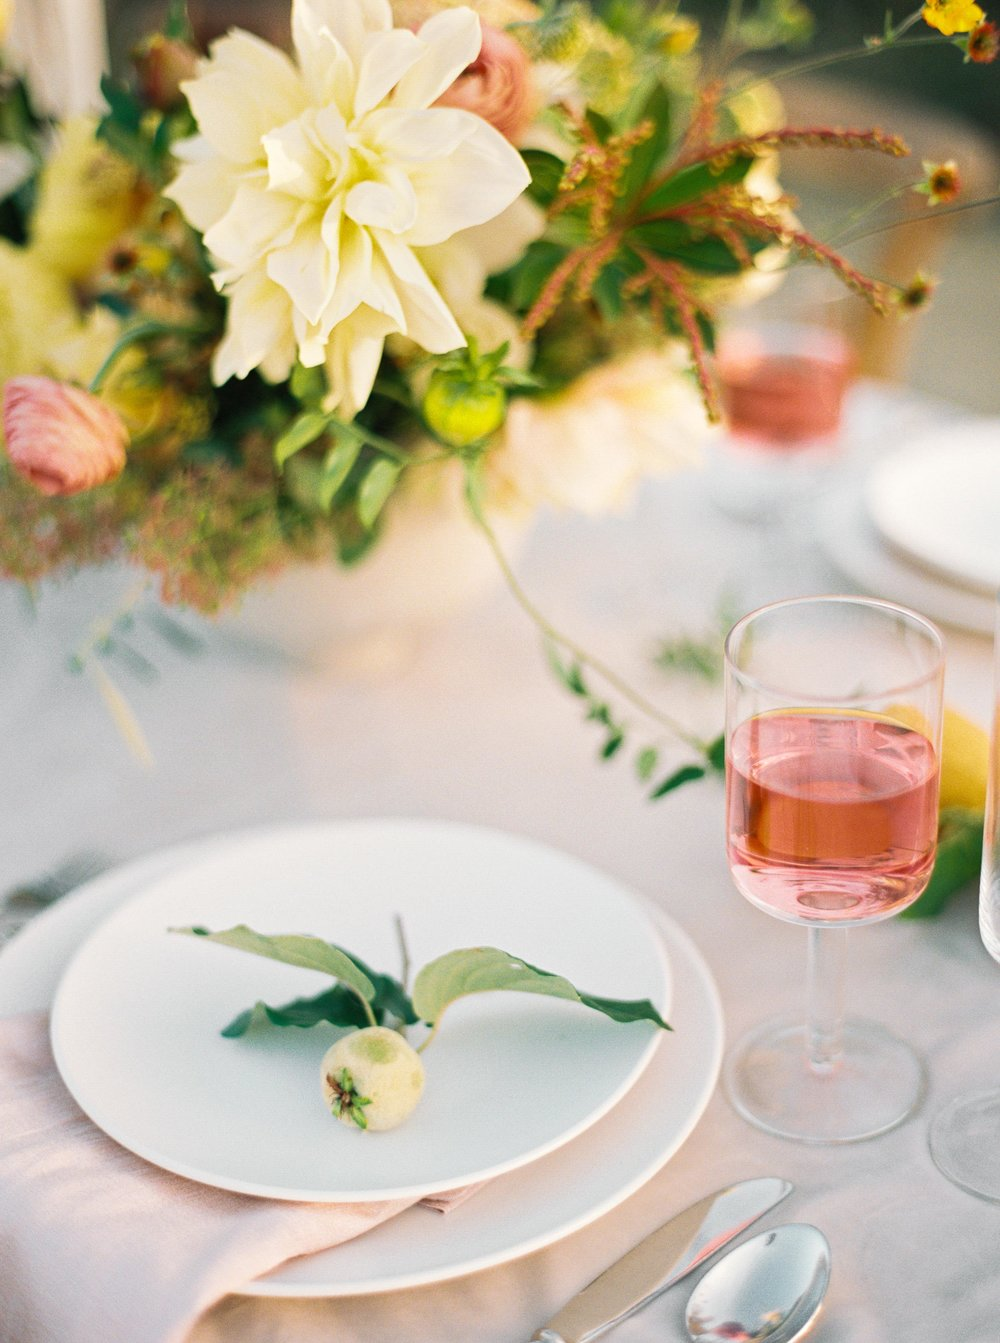 069napa_wedding_photographer_and_videographer_destination_and_elopement_photography.jpg